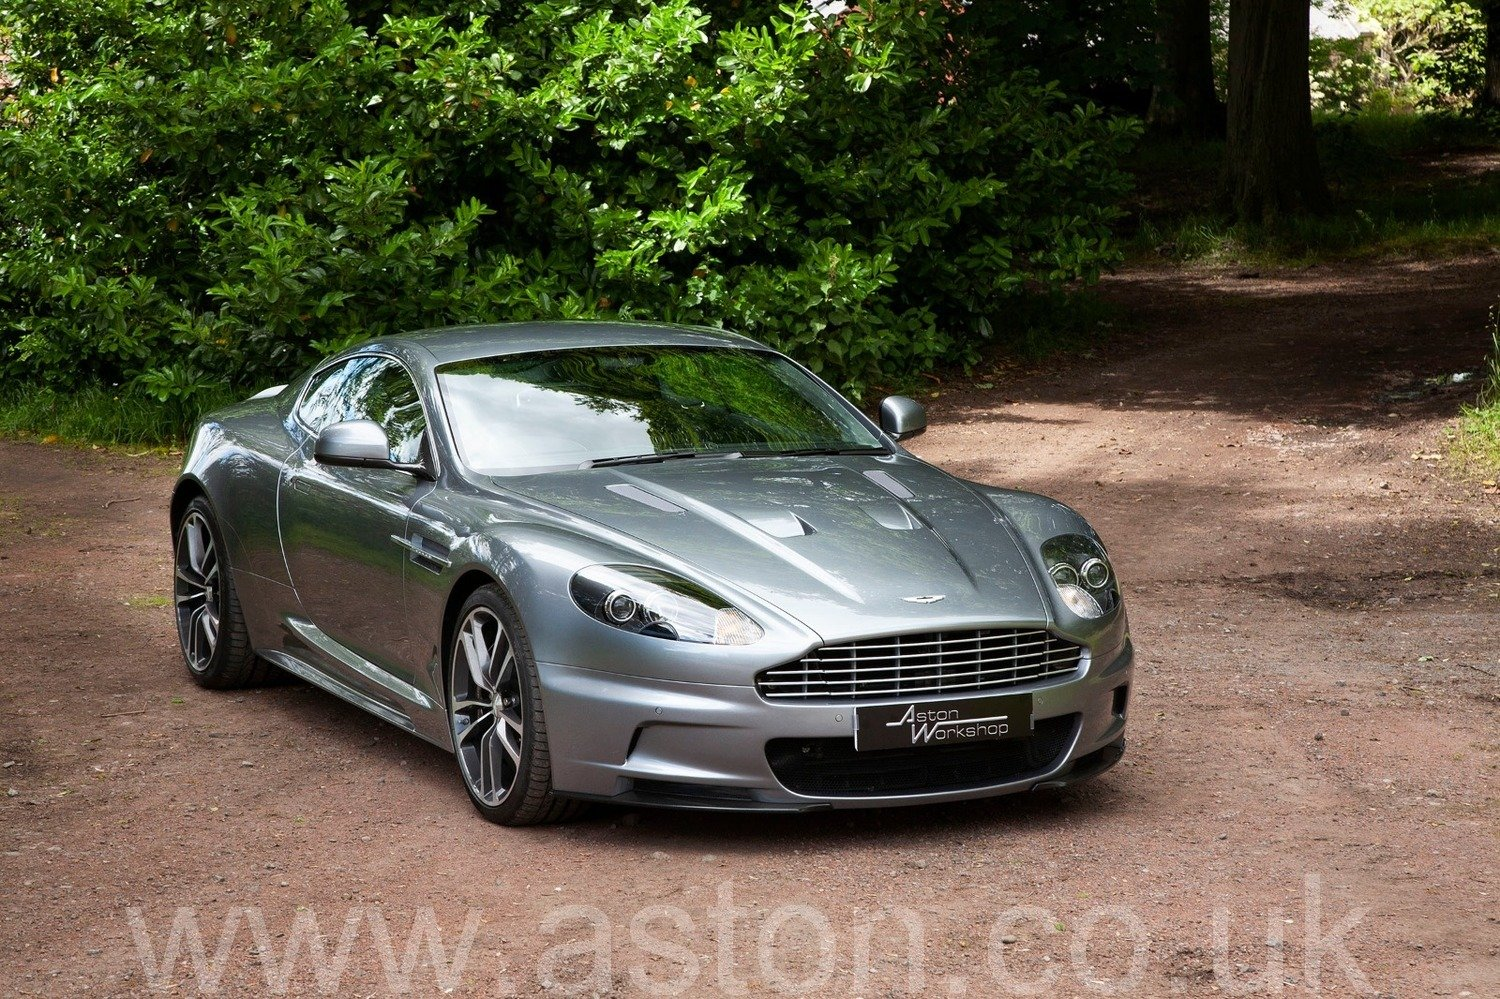 2012 Aston Martin DBS Automatic For Sale (picture 1 of 6)